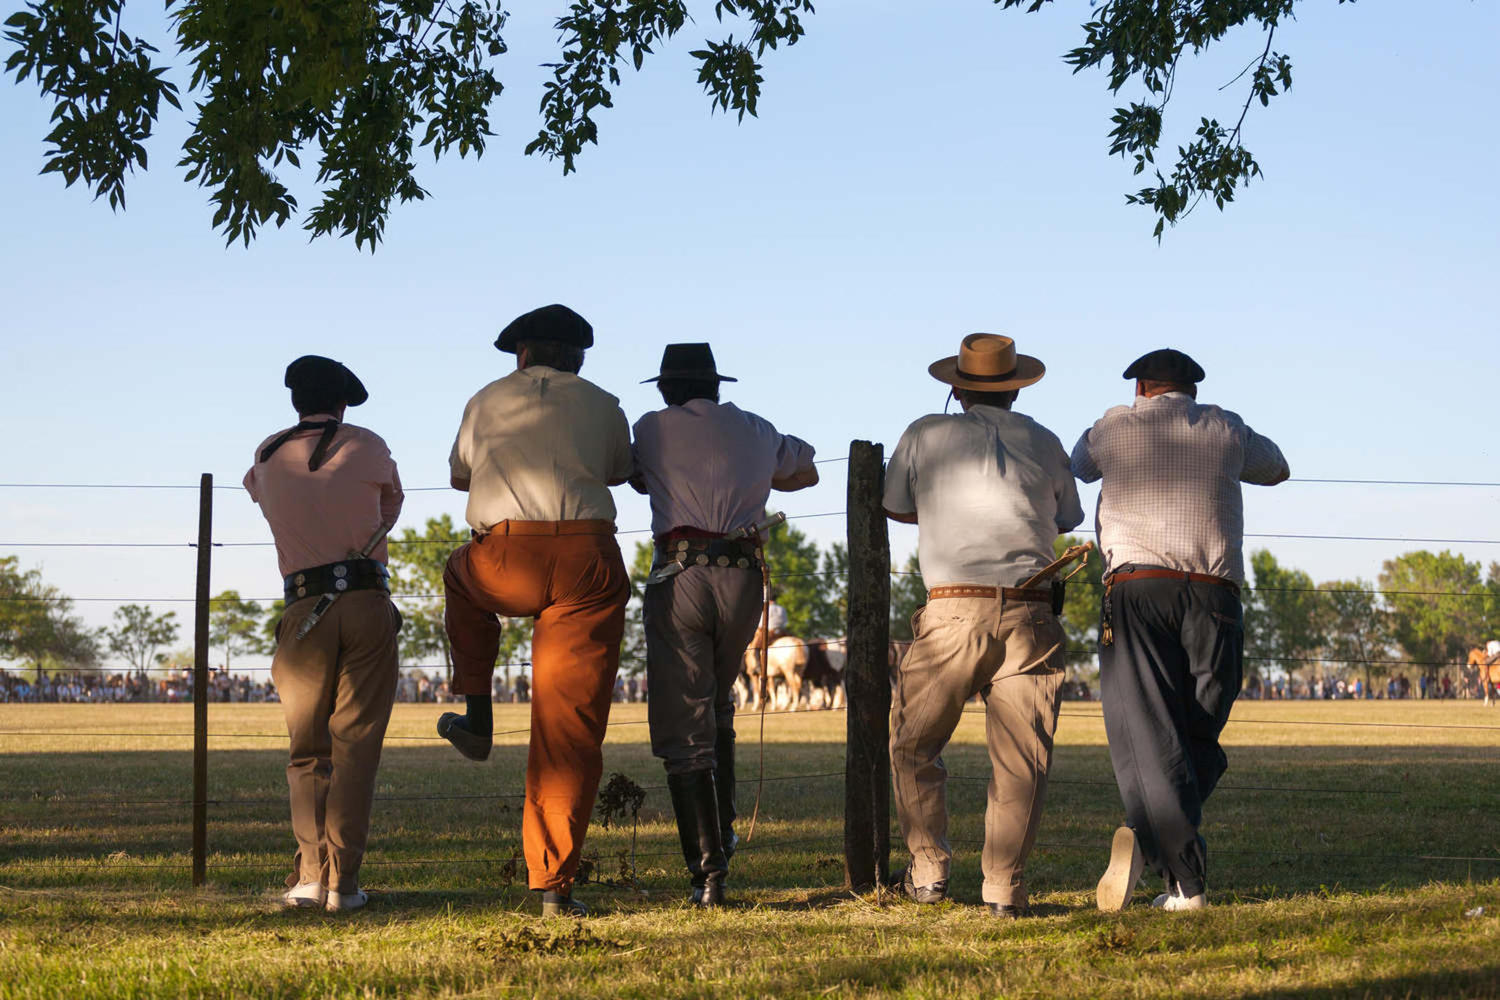 Five Gauchos in San Antonio de Areco during Argentina Day of Tradition